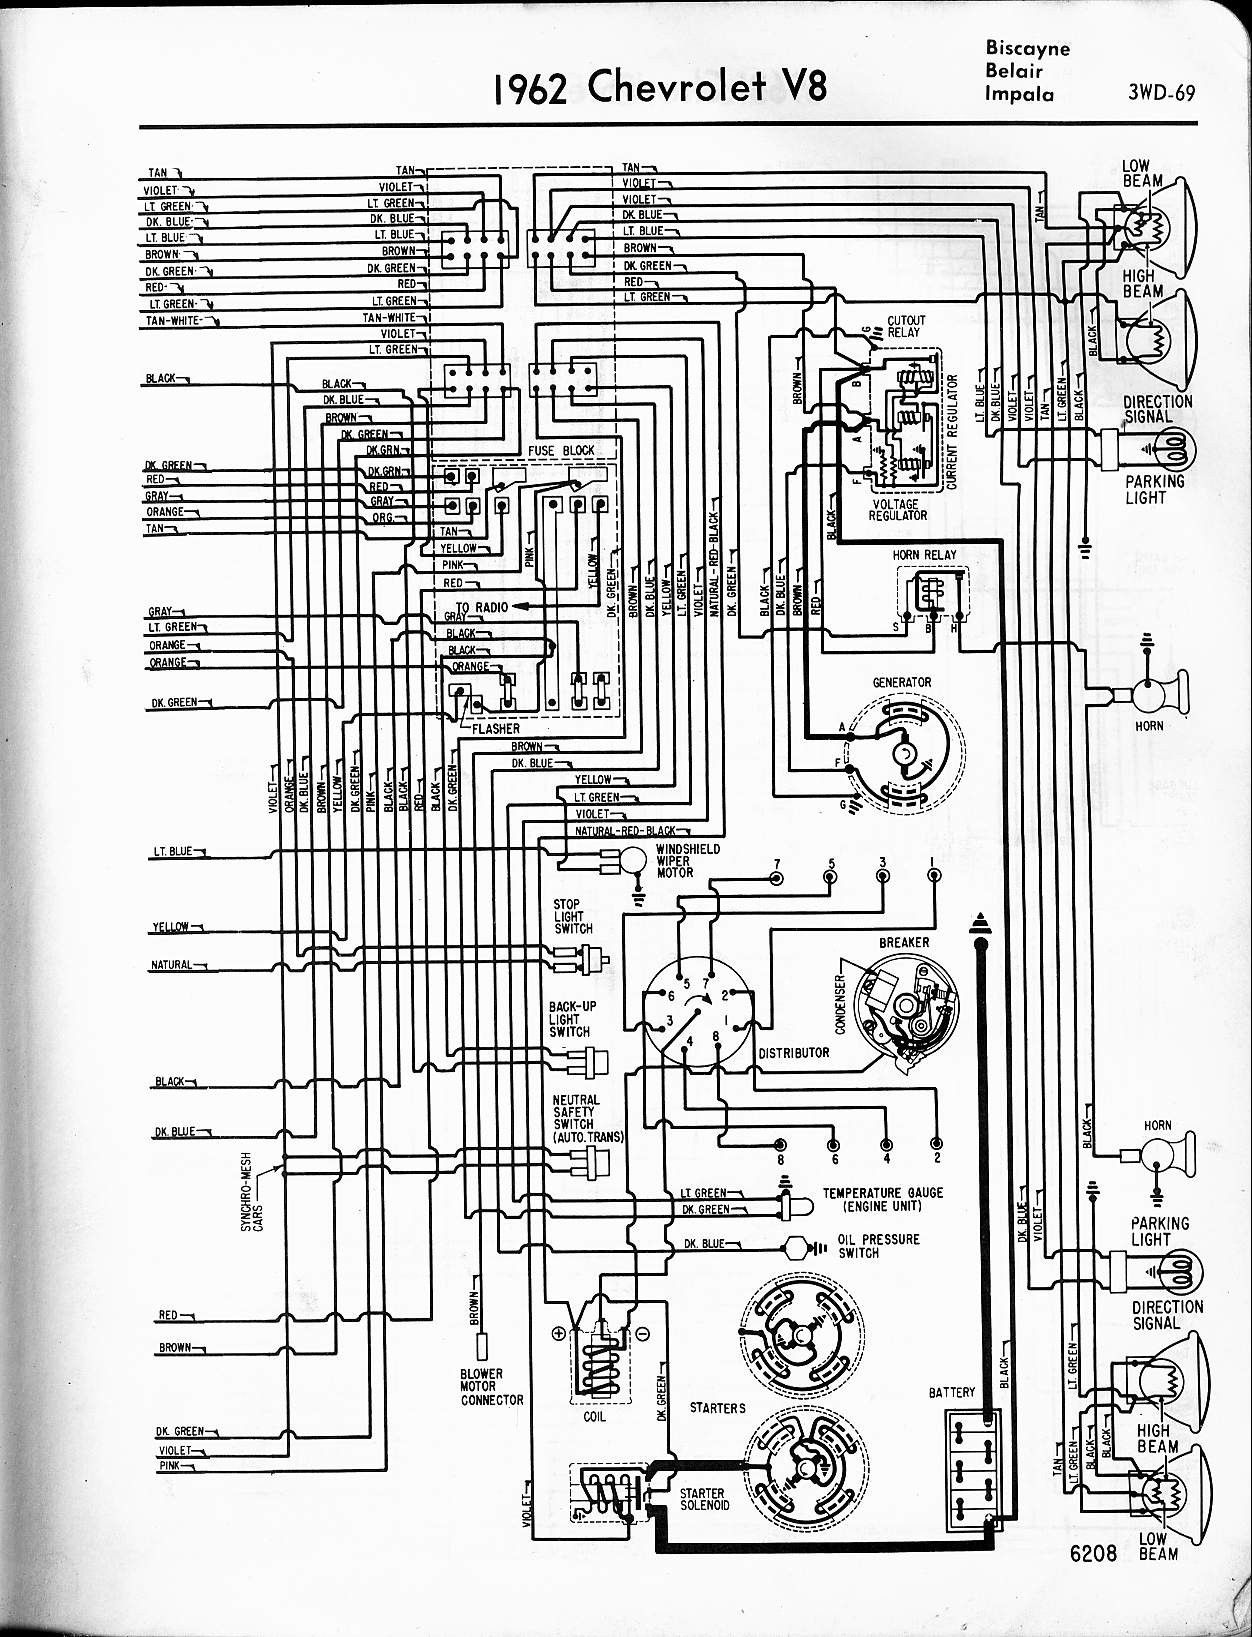 1969 Chevy Impala Wiring Diagram Worksheet And 1968 2000 Free Picture Schematics Rh Parntesis Co 2007